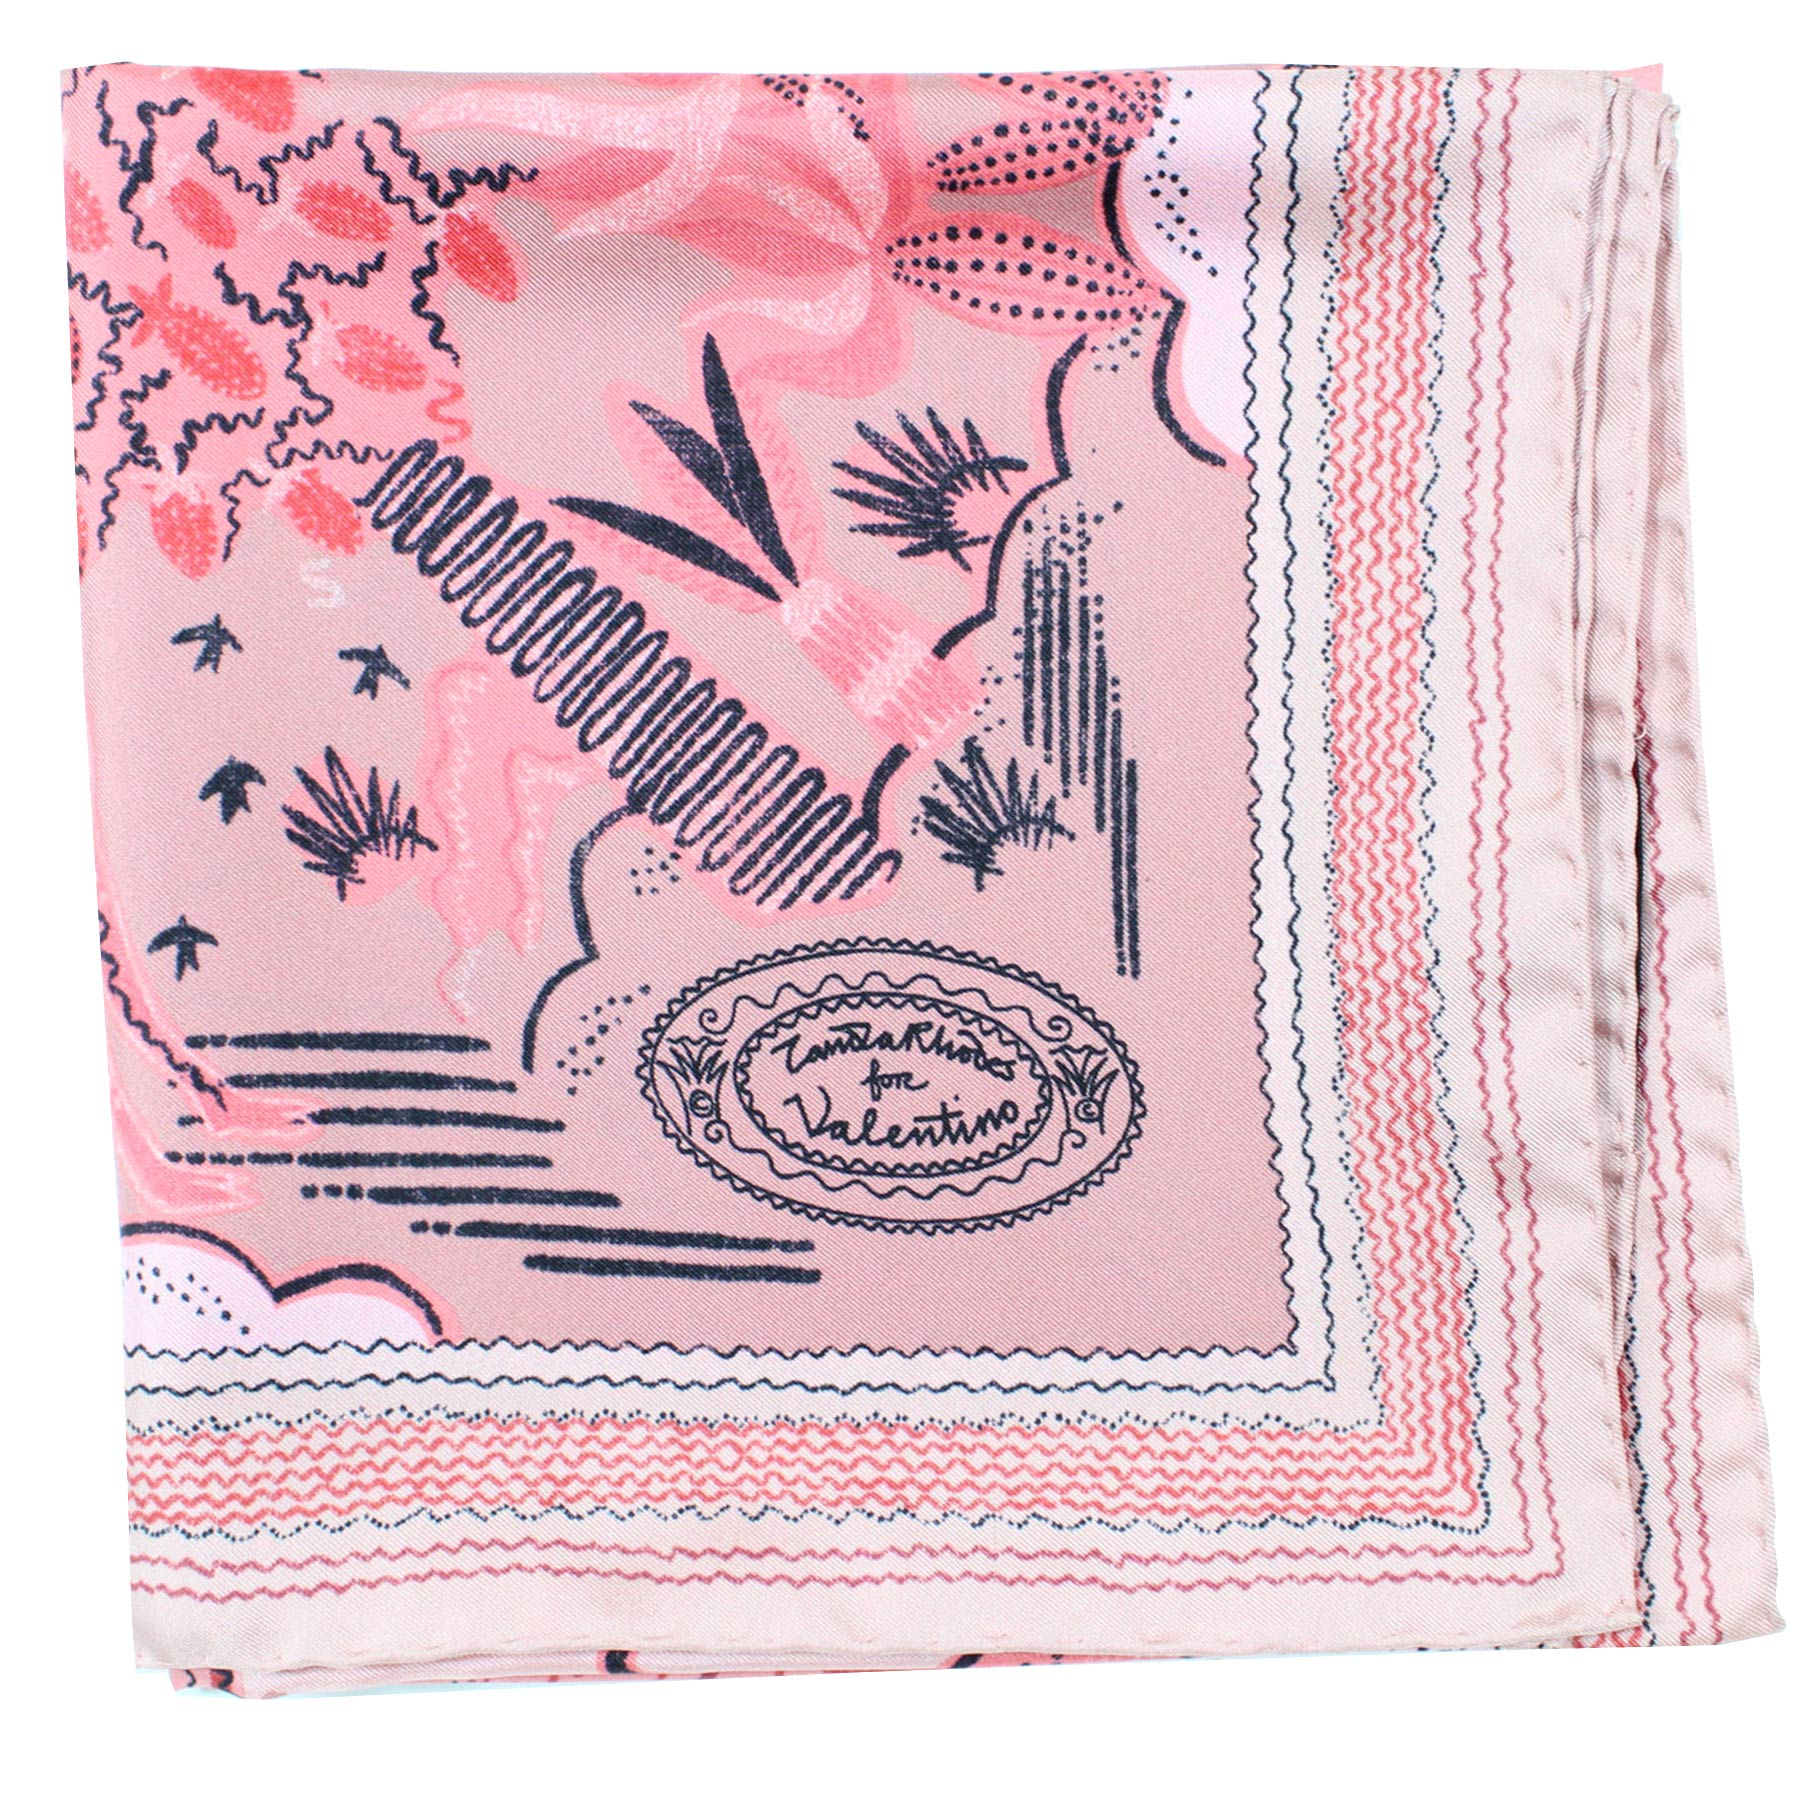 Valentino Scarf Pink Animal Drawings